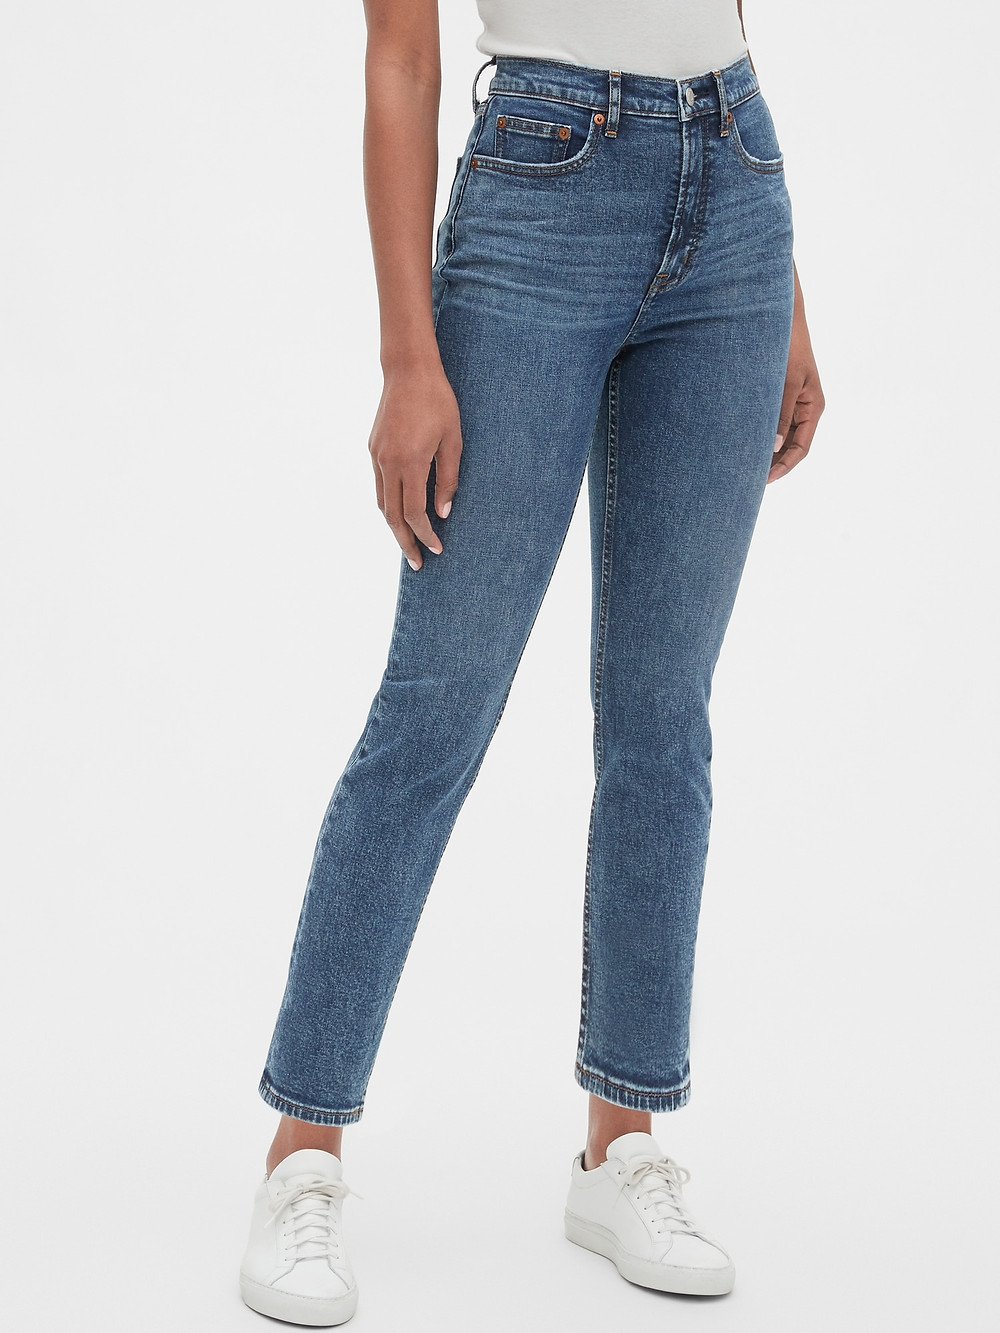 types of jeans Cigarette Jeans